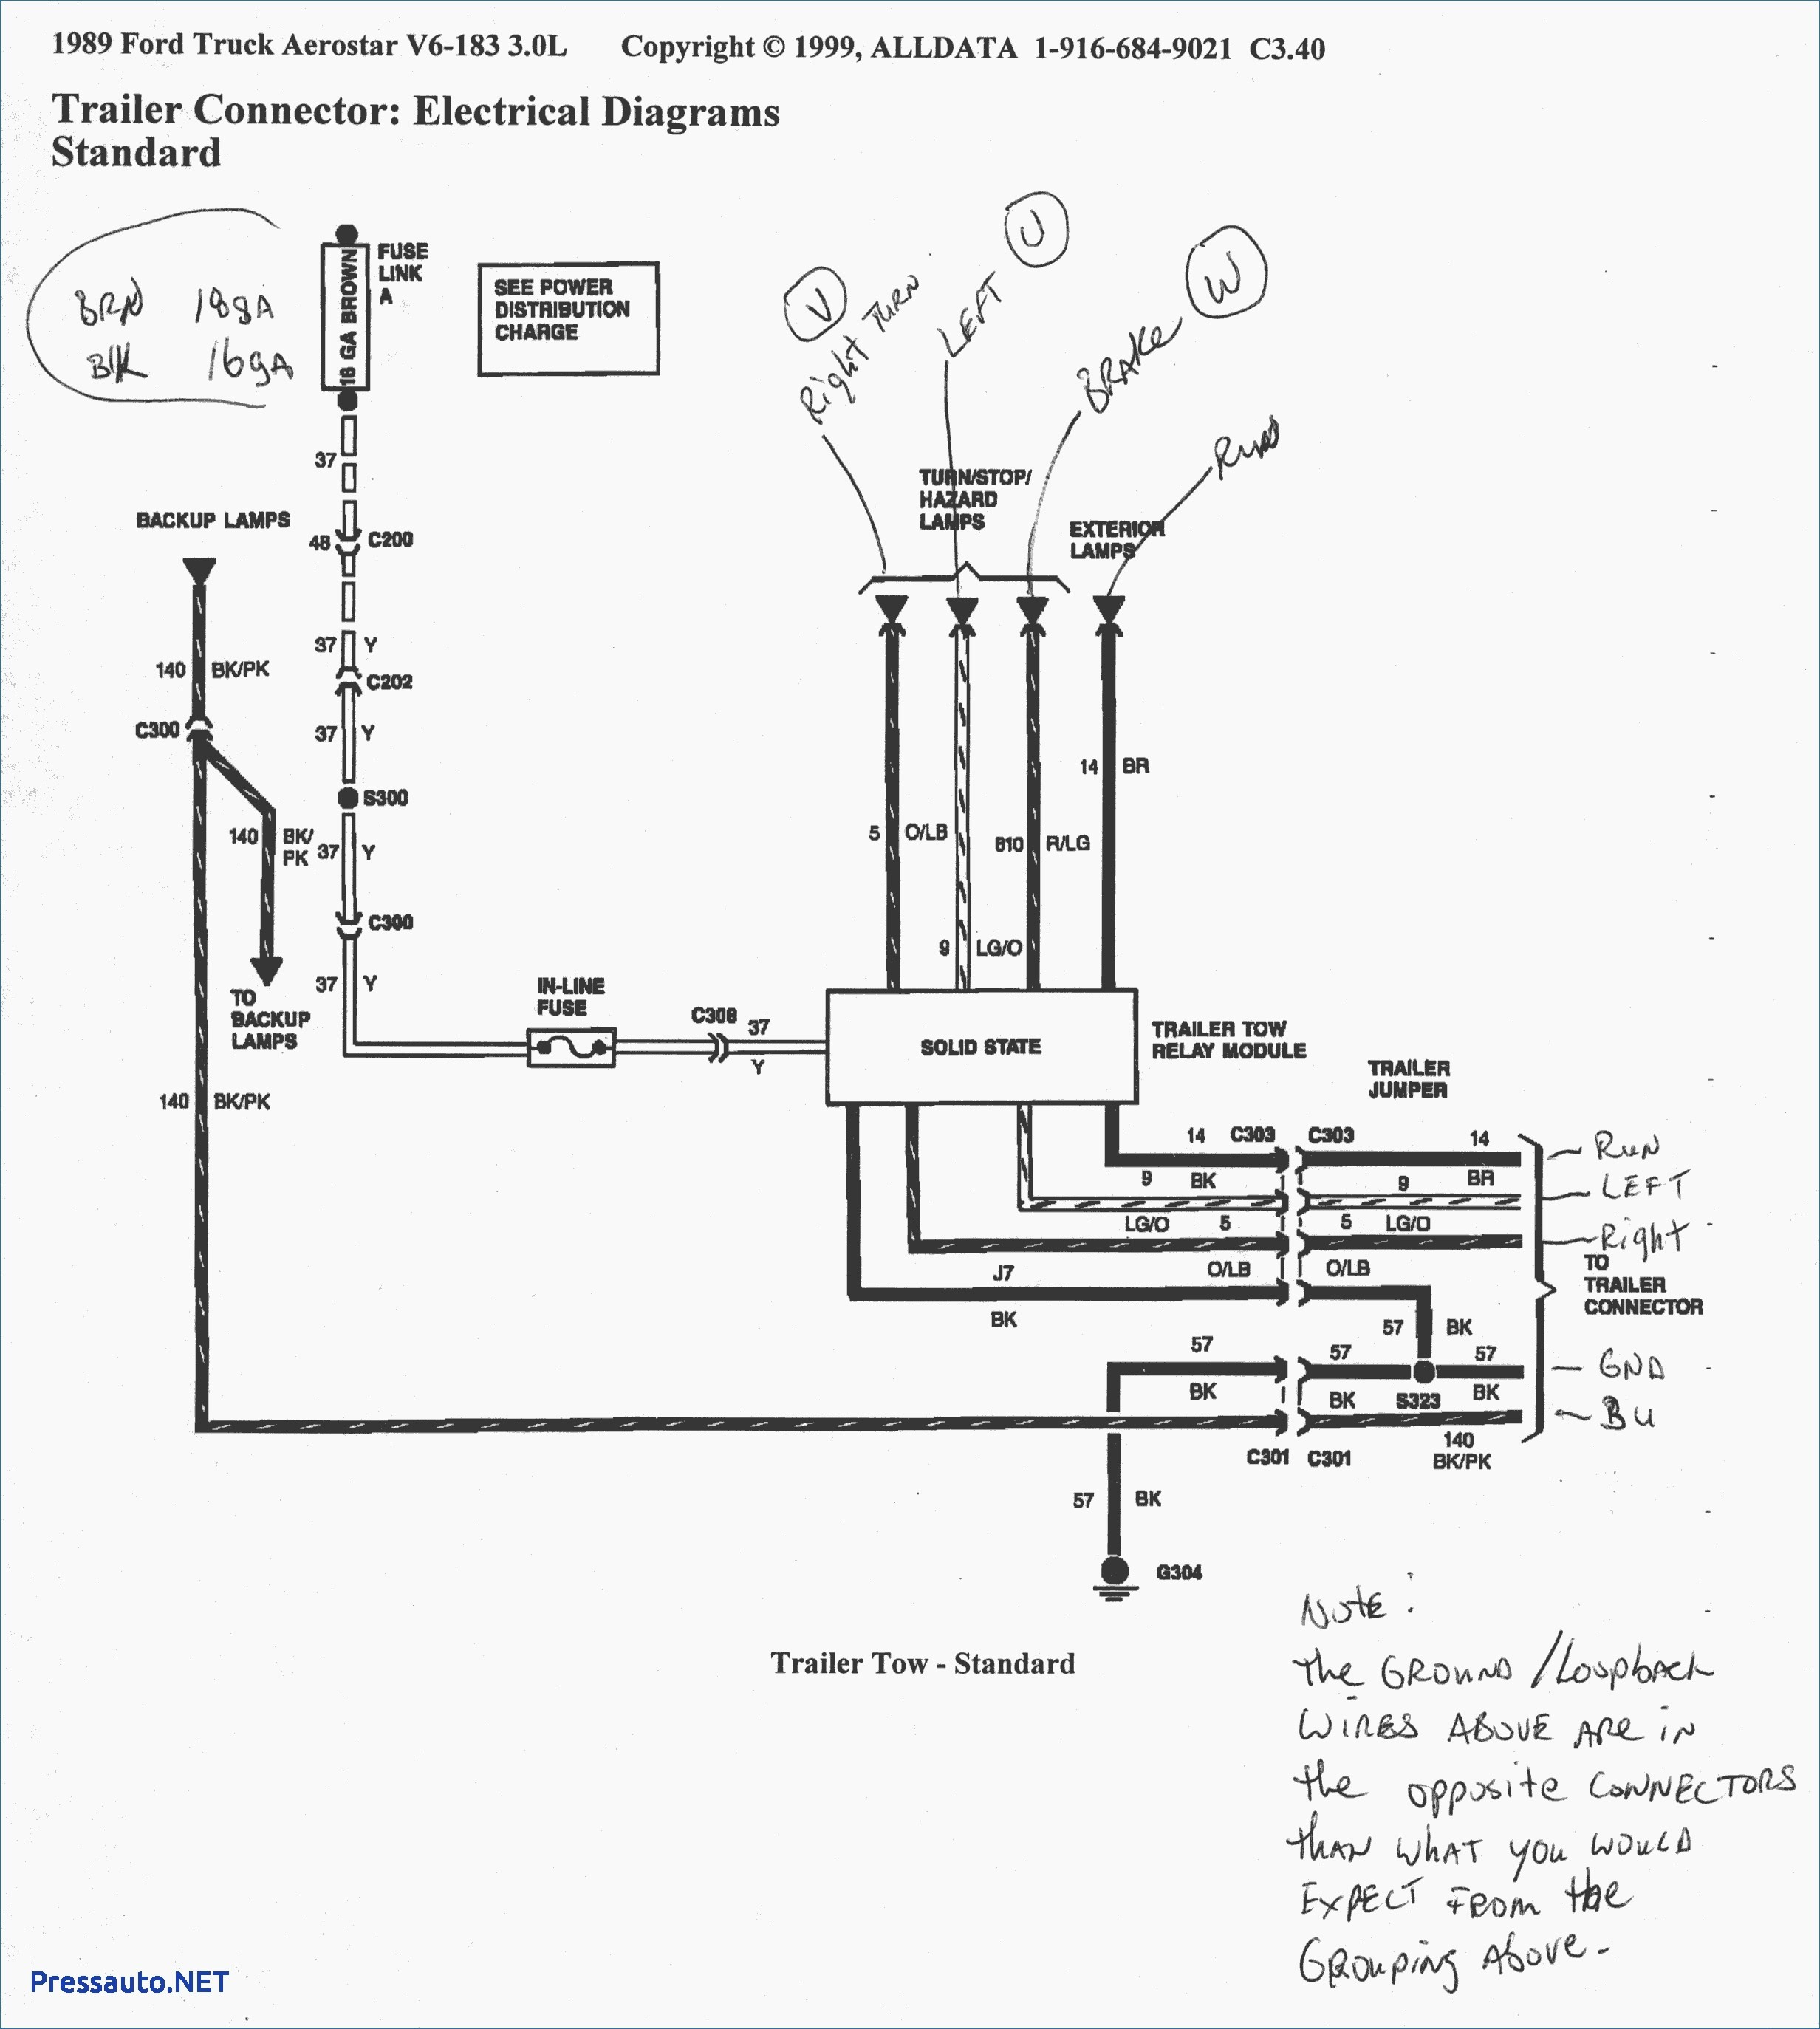 Trailer Plug Wiring Diagram 7 Way Australia Connector Ford For - Ford Trailer Wiring Diagram 7 Way